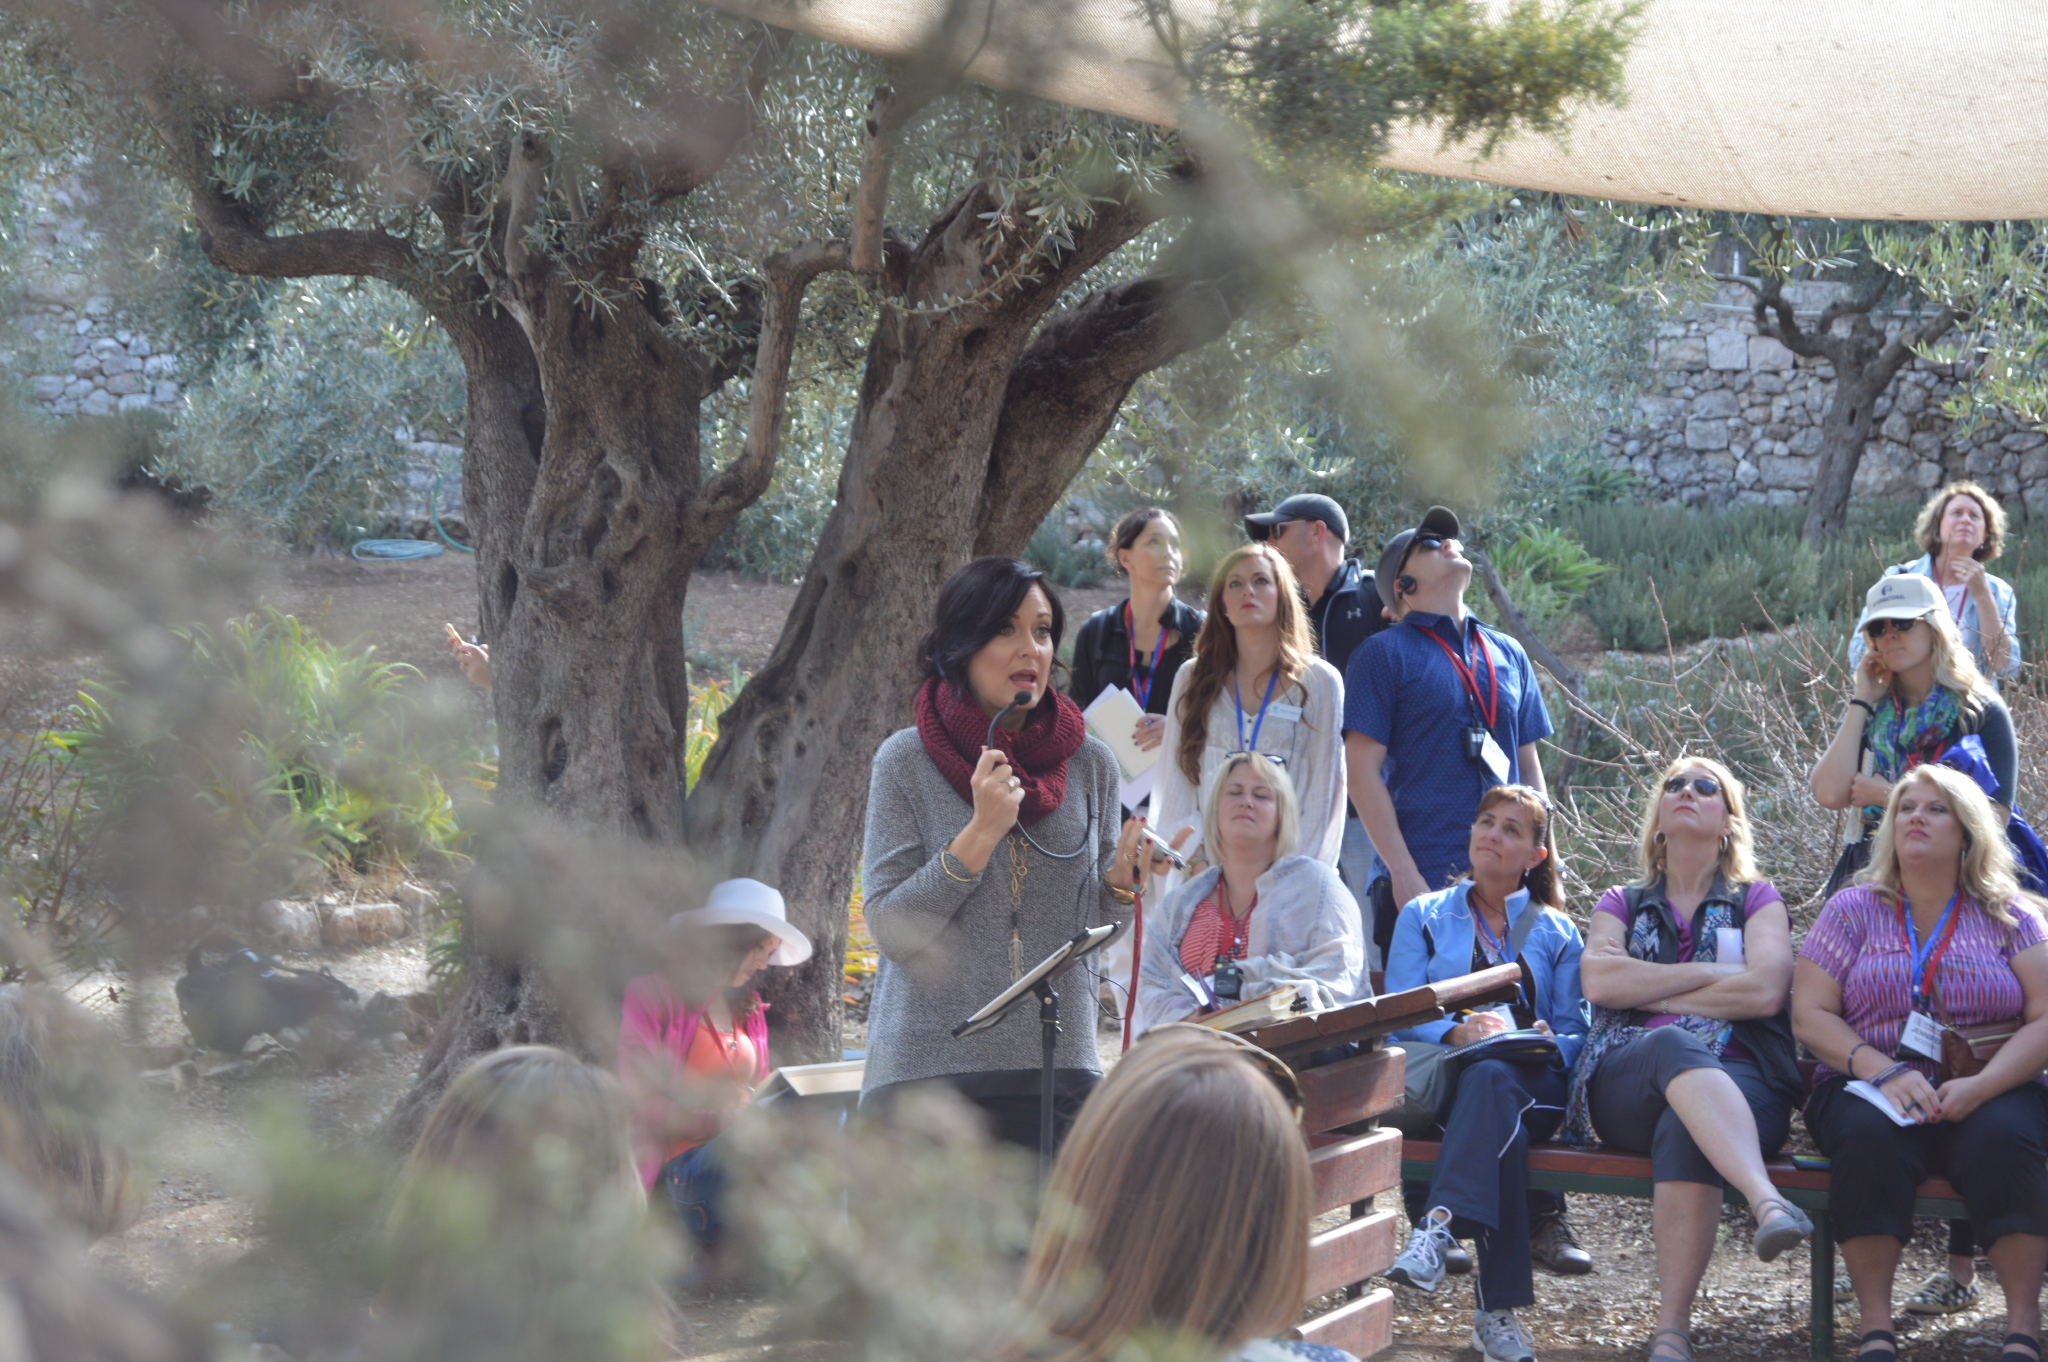 Watching on as Lysa Terkeurst teaches in the Garden of Gethsemane - a garden full of beautiful olive trees.